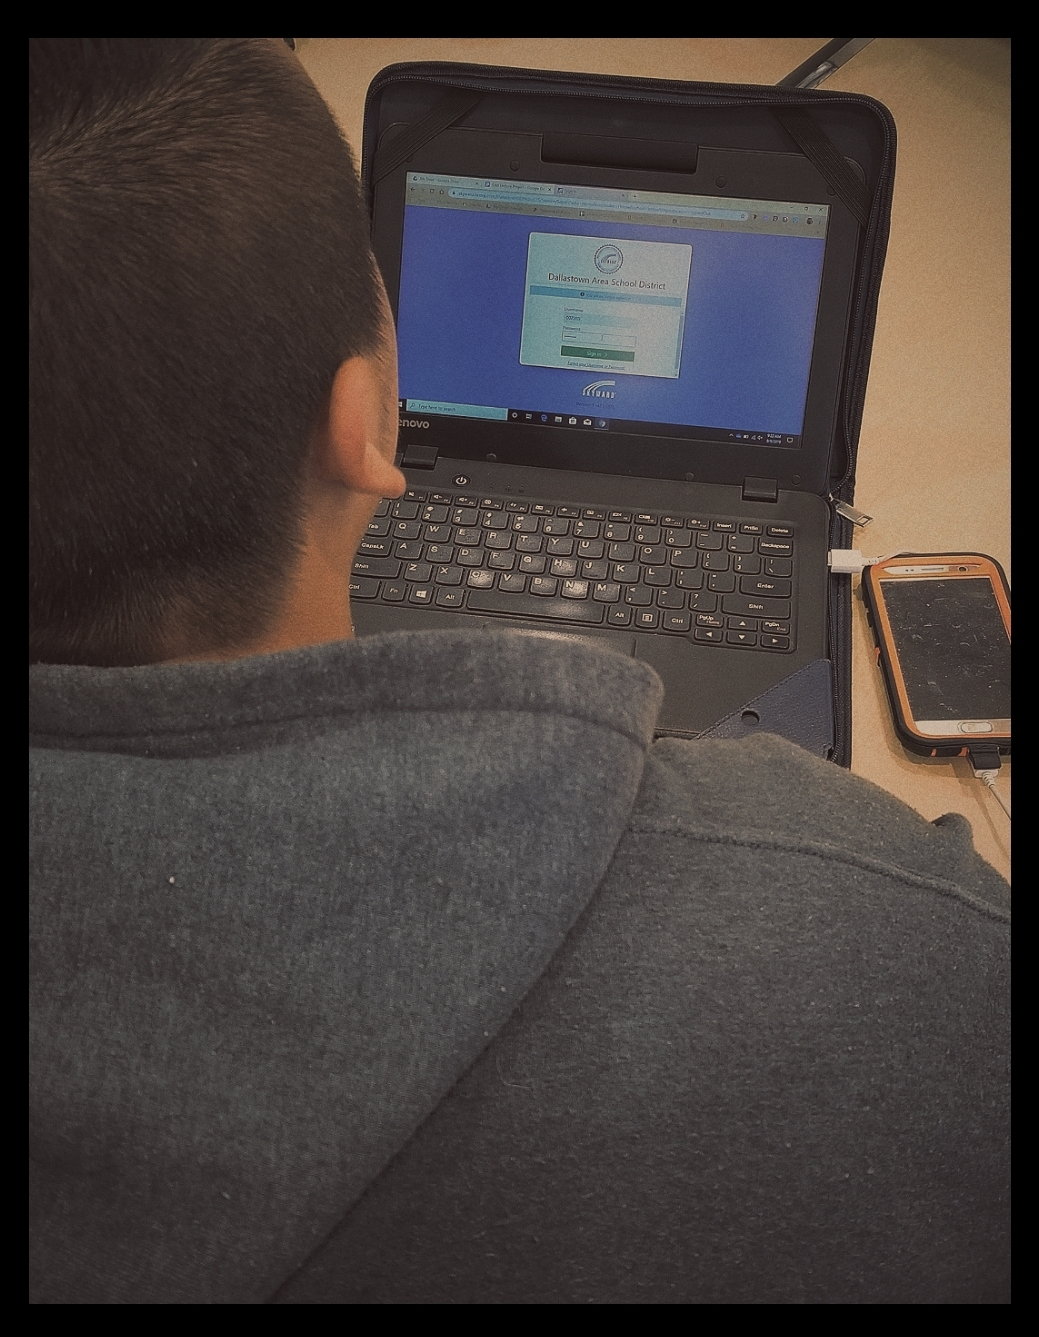 Dallastown student Juan Morales logs into Skyward for the very first time to check his grades and test results.